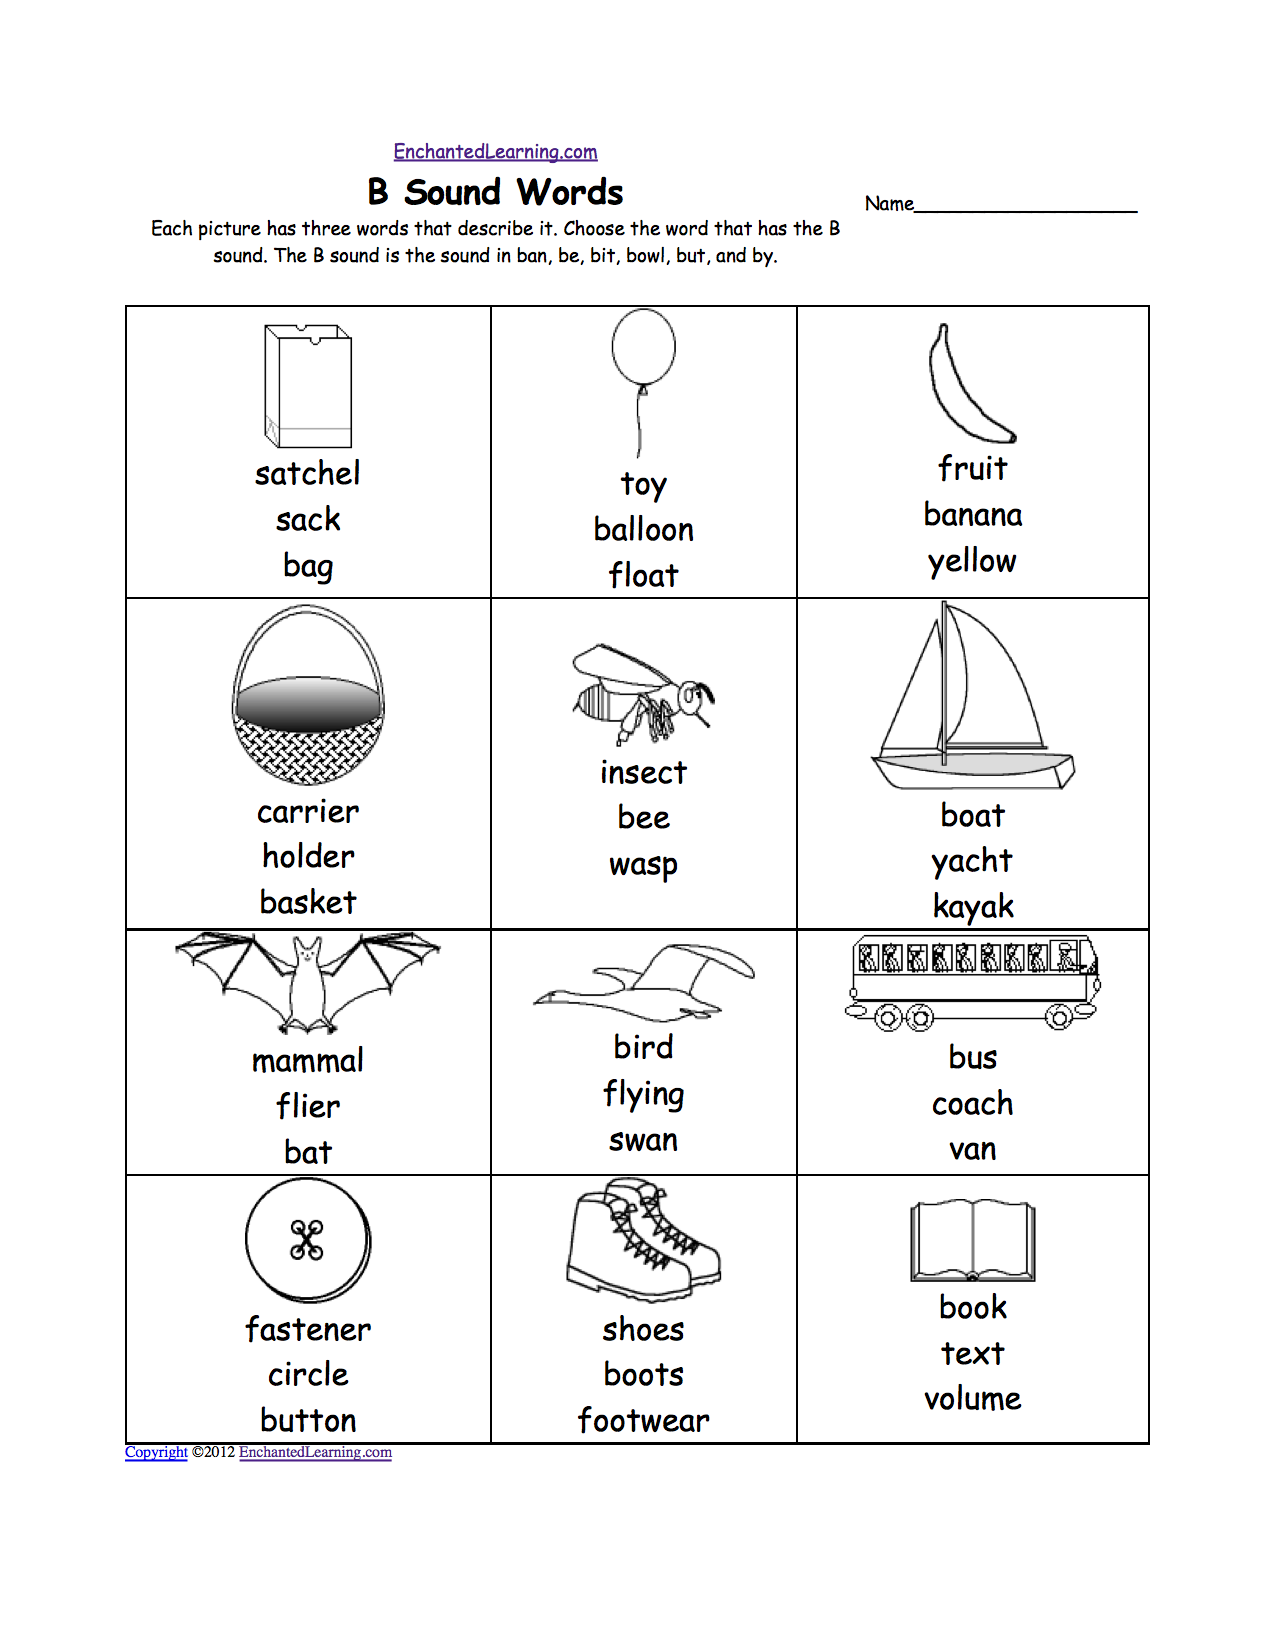 Weirdmailus  Marvellous Phonics Worksheets Multiple Choice Worksheets To Print  With Hot Quotbquot Sound Phonics Worksheet Multiple Choice Each Picture Has Three Words That Describe It Choose The Word That Has A Quotbquot Sound The Quotbquot Sound Is The Sound  With Astounding Addition Worksheet Also Letter E Worksheets In Addition Dihybrid Cross Worksheet Answers And Special Right Triangles Worksheet  As Well As Dna Base Pairing Worksheet Answers Additionally Carbohydrates Worksheet Answers From Enchantedlearningcom With Weirdmailus  Hot Phonics Worksheets Multiple Choice Worksheets To Print  With Astounding Quotbquot Sound Phonics Worksheet Multiple Choice Each Picture Has Three Words That Describe It Choose The Word That Has A Quotbquot Sound The Quotbquot Sound Is The Sound  And Marvellous Addition Worksheet Also Letter E Worksheets In Addition Dihybrid Cross Worksheet Answers From Enchantedlearningcom